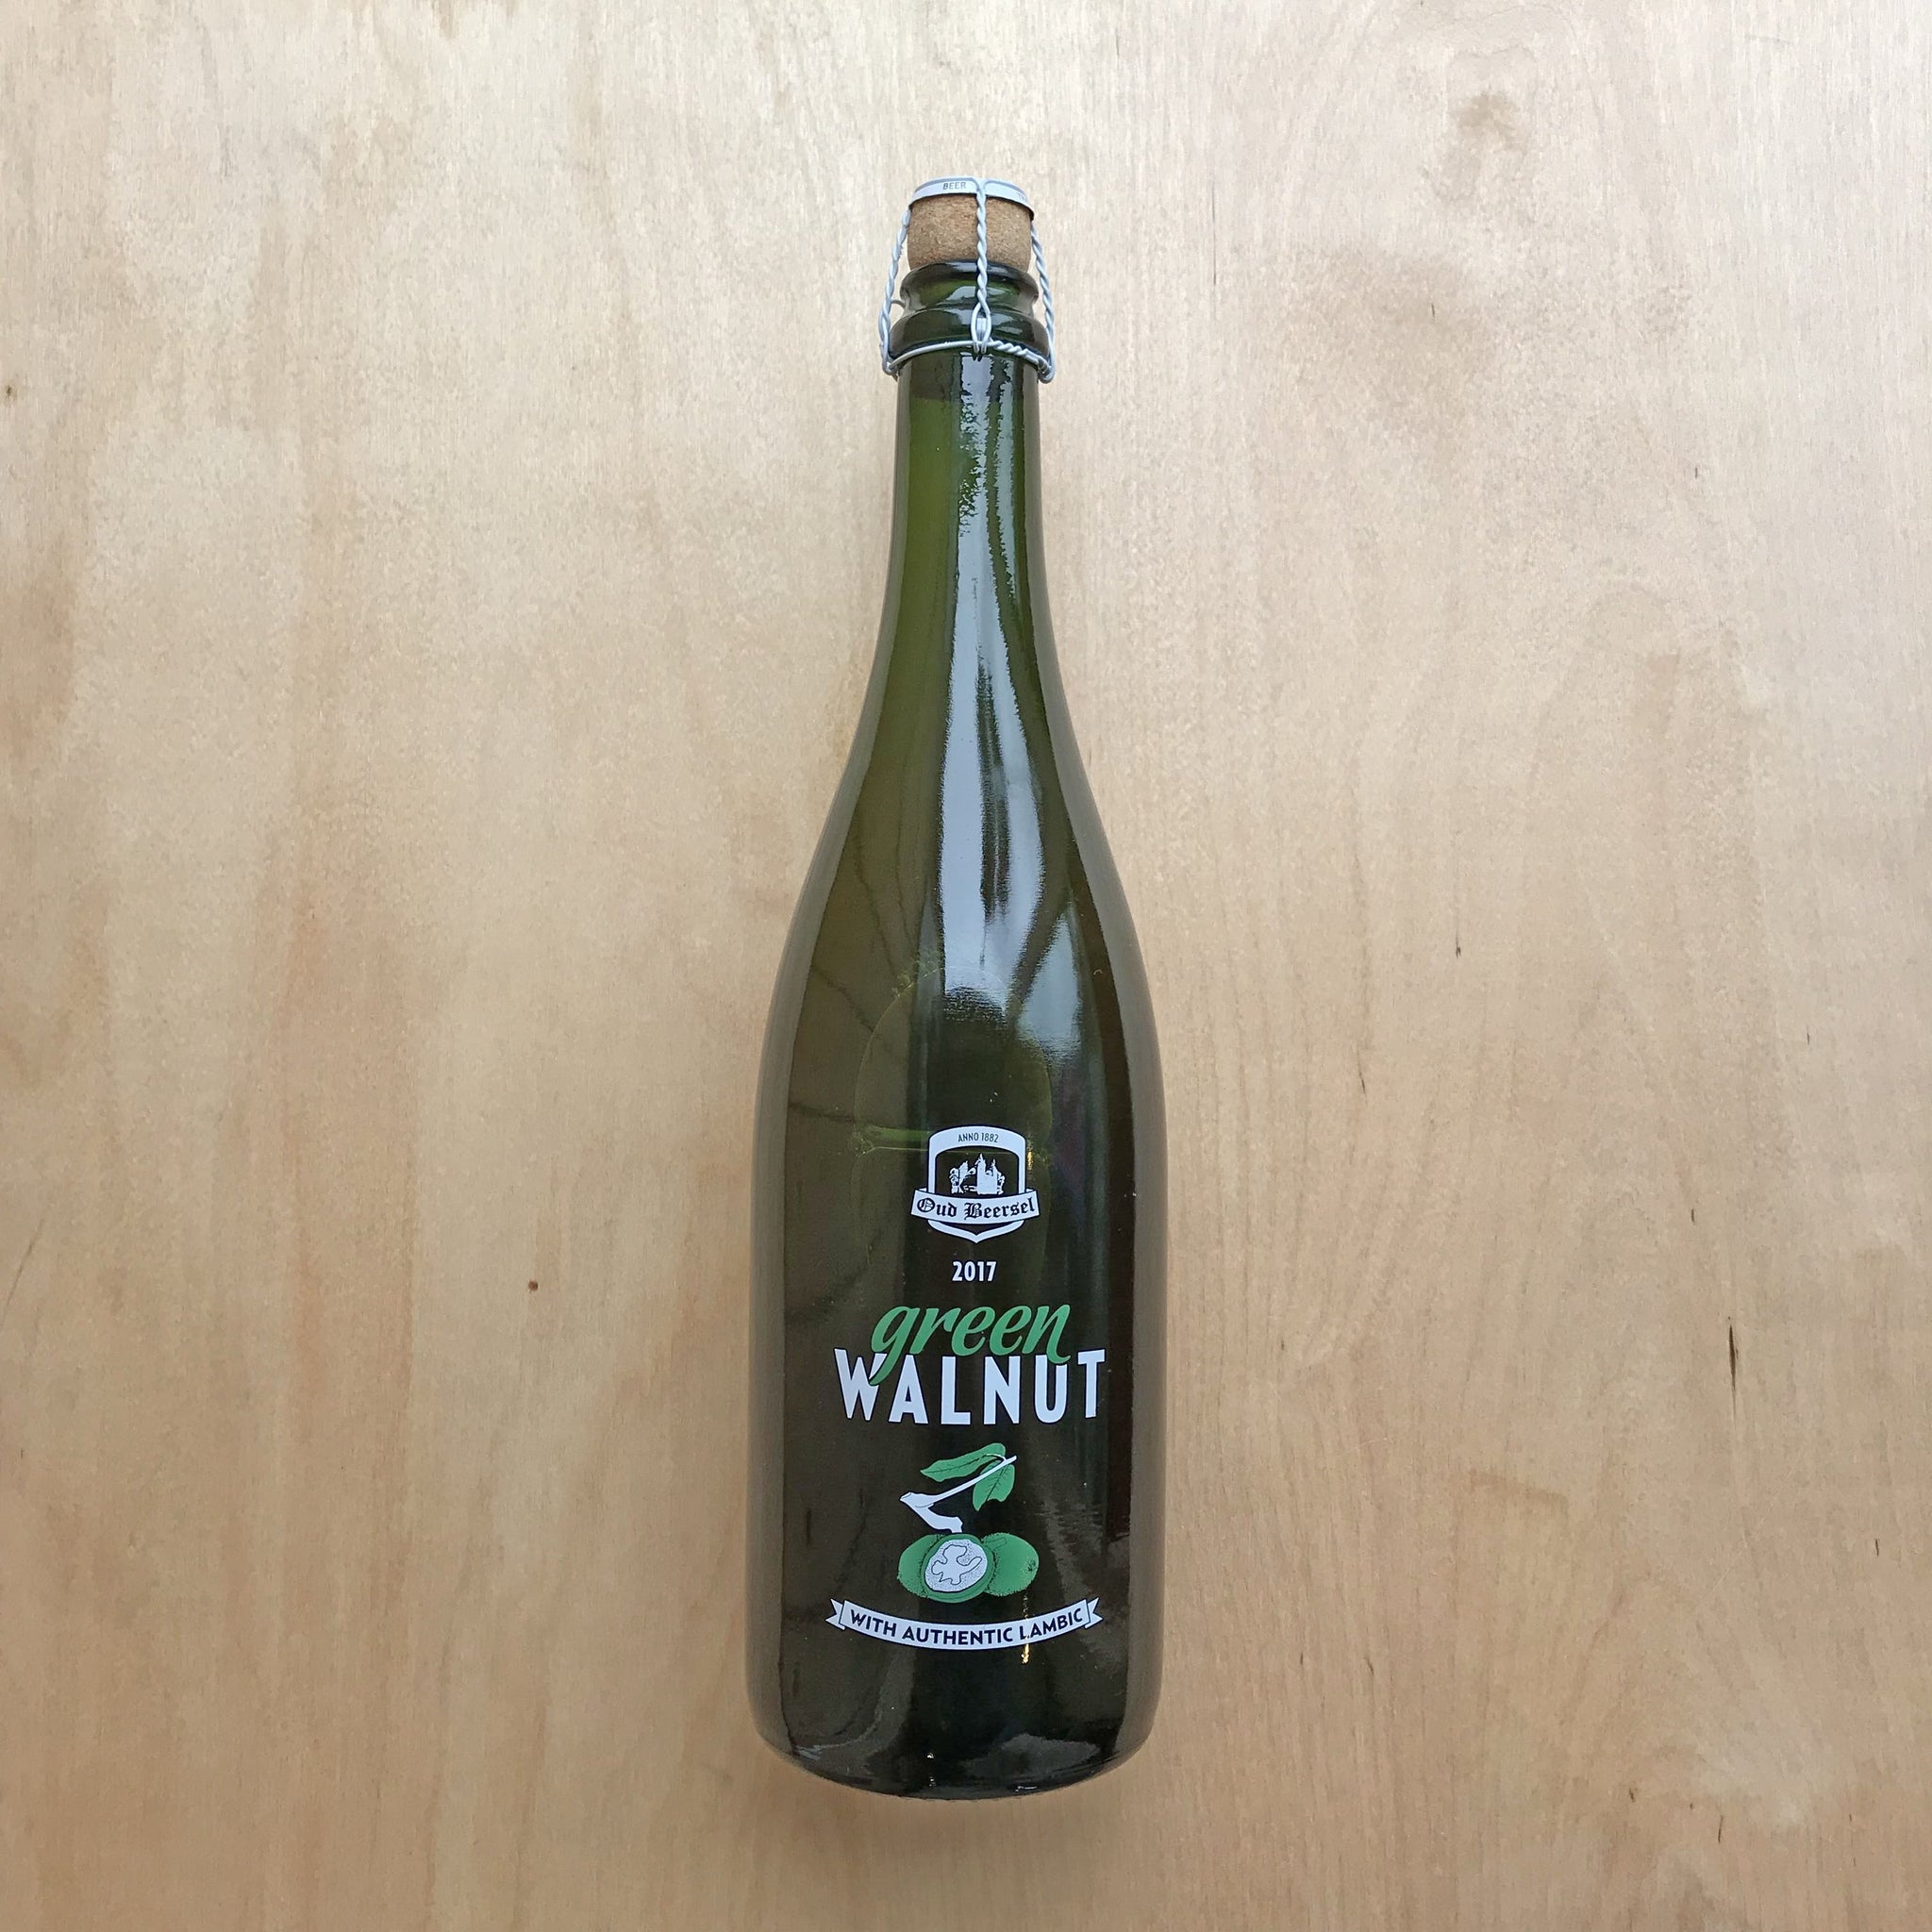 Oud Beersel Green Walnut 6% (750ml)